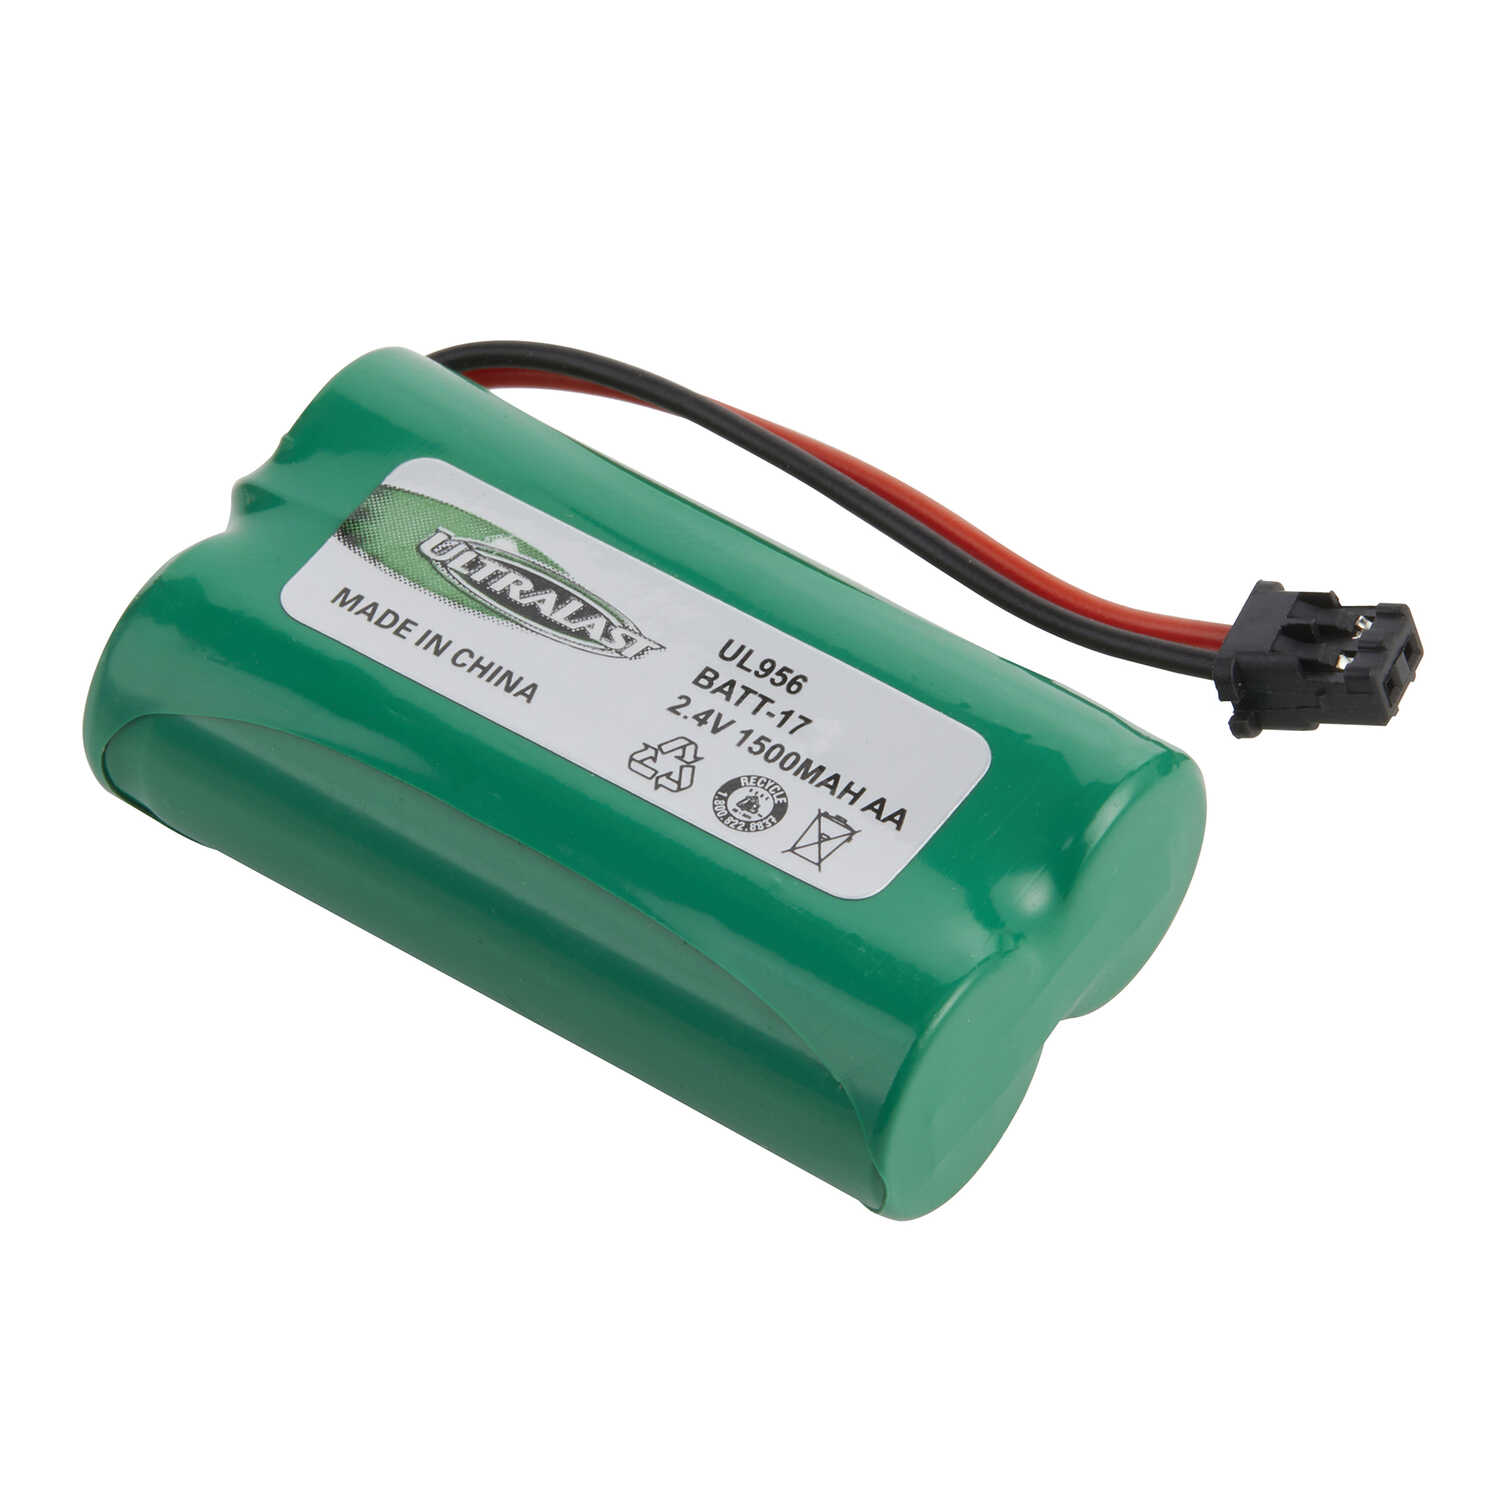 Ultralast  NiMH  AA  2.4 volt Cordless Phone Battery  BATT-17  1 pk